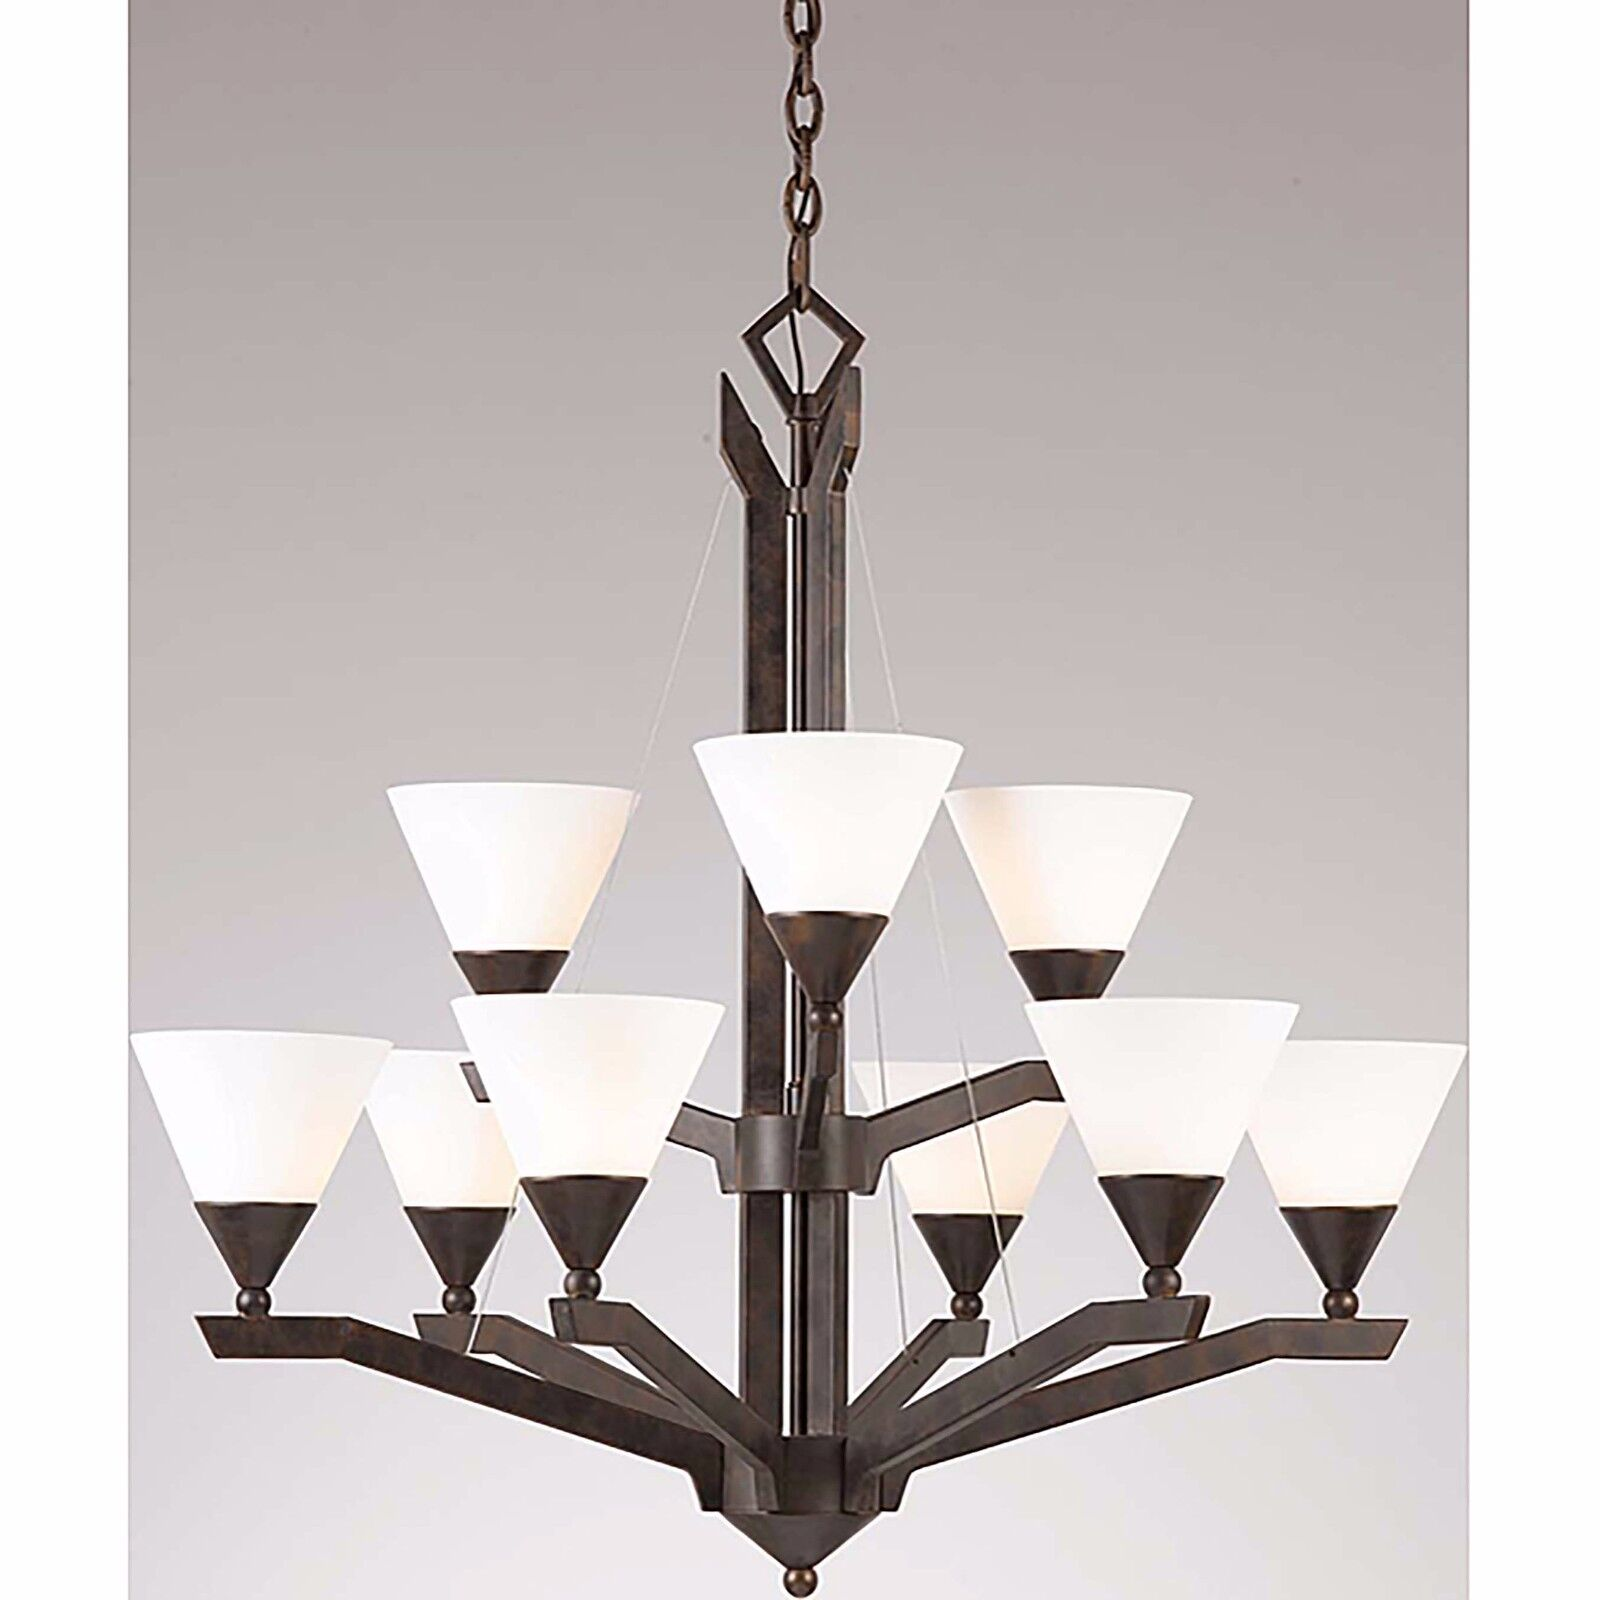 Triarch 29634 sherwood chandeliers english bronze ebay picture 1 of 2 arubaitofo Image collections